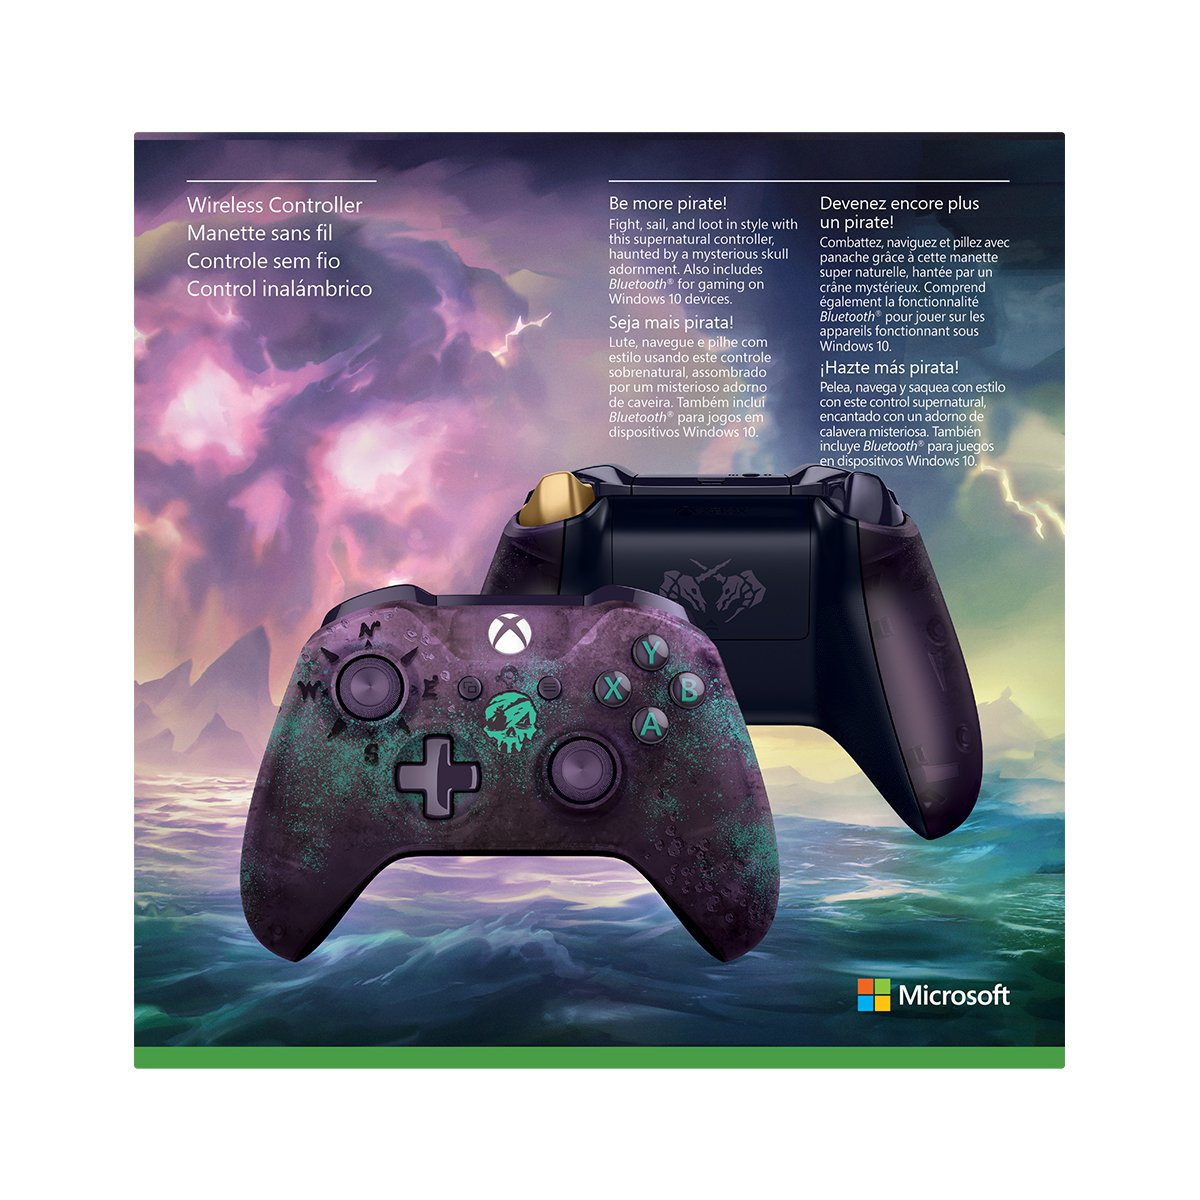 Xbox Wireless Controller - Sea of Thieves Limited Edition by Microsoft